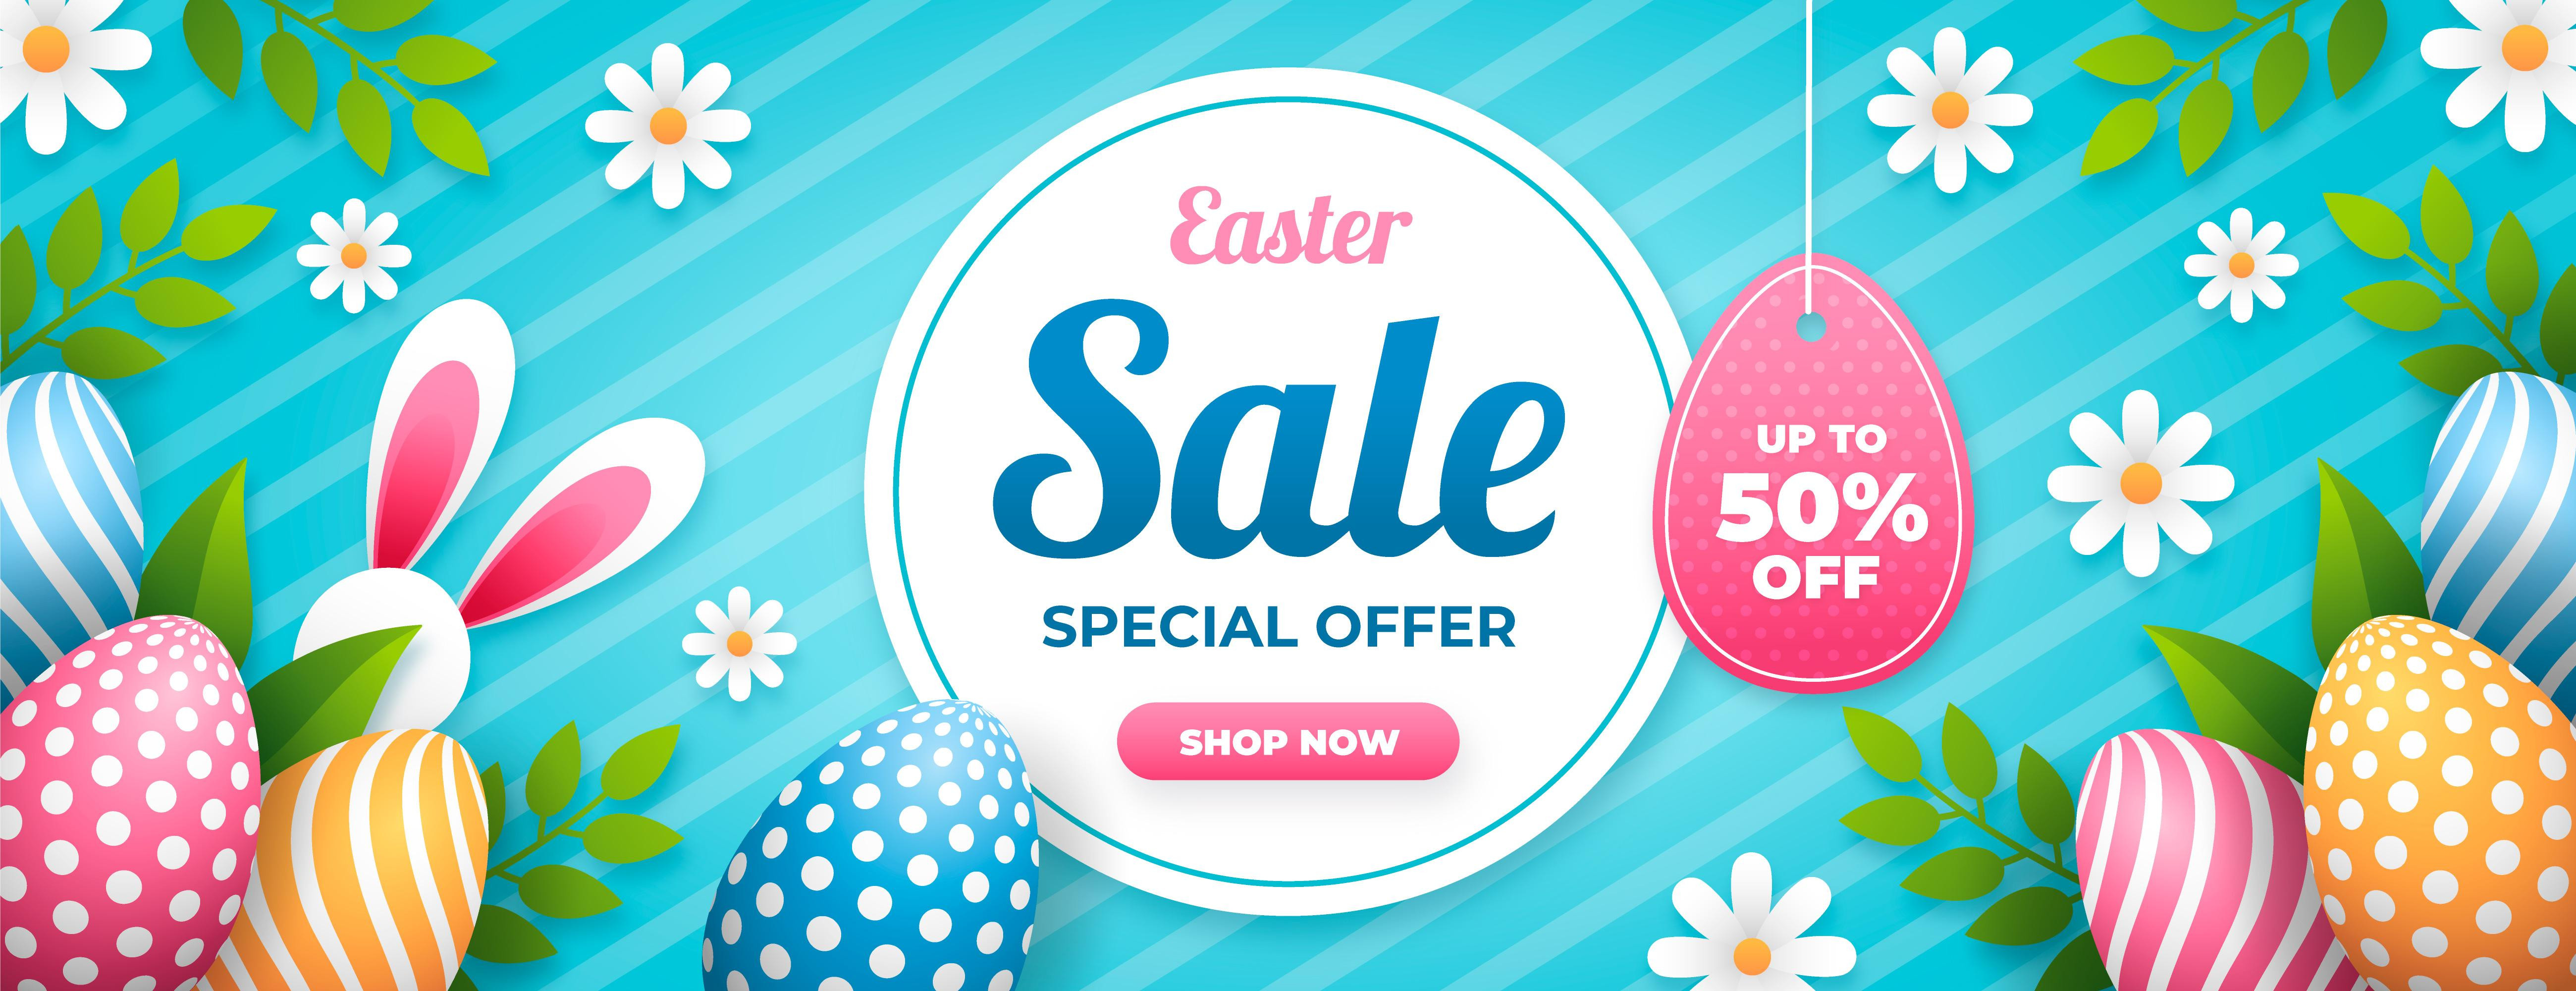 Best Easter Coupons, Promo Codes, and Deals 2021